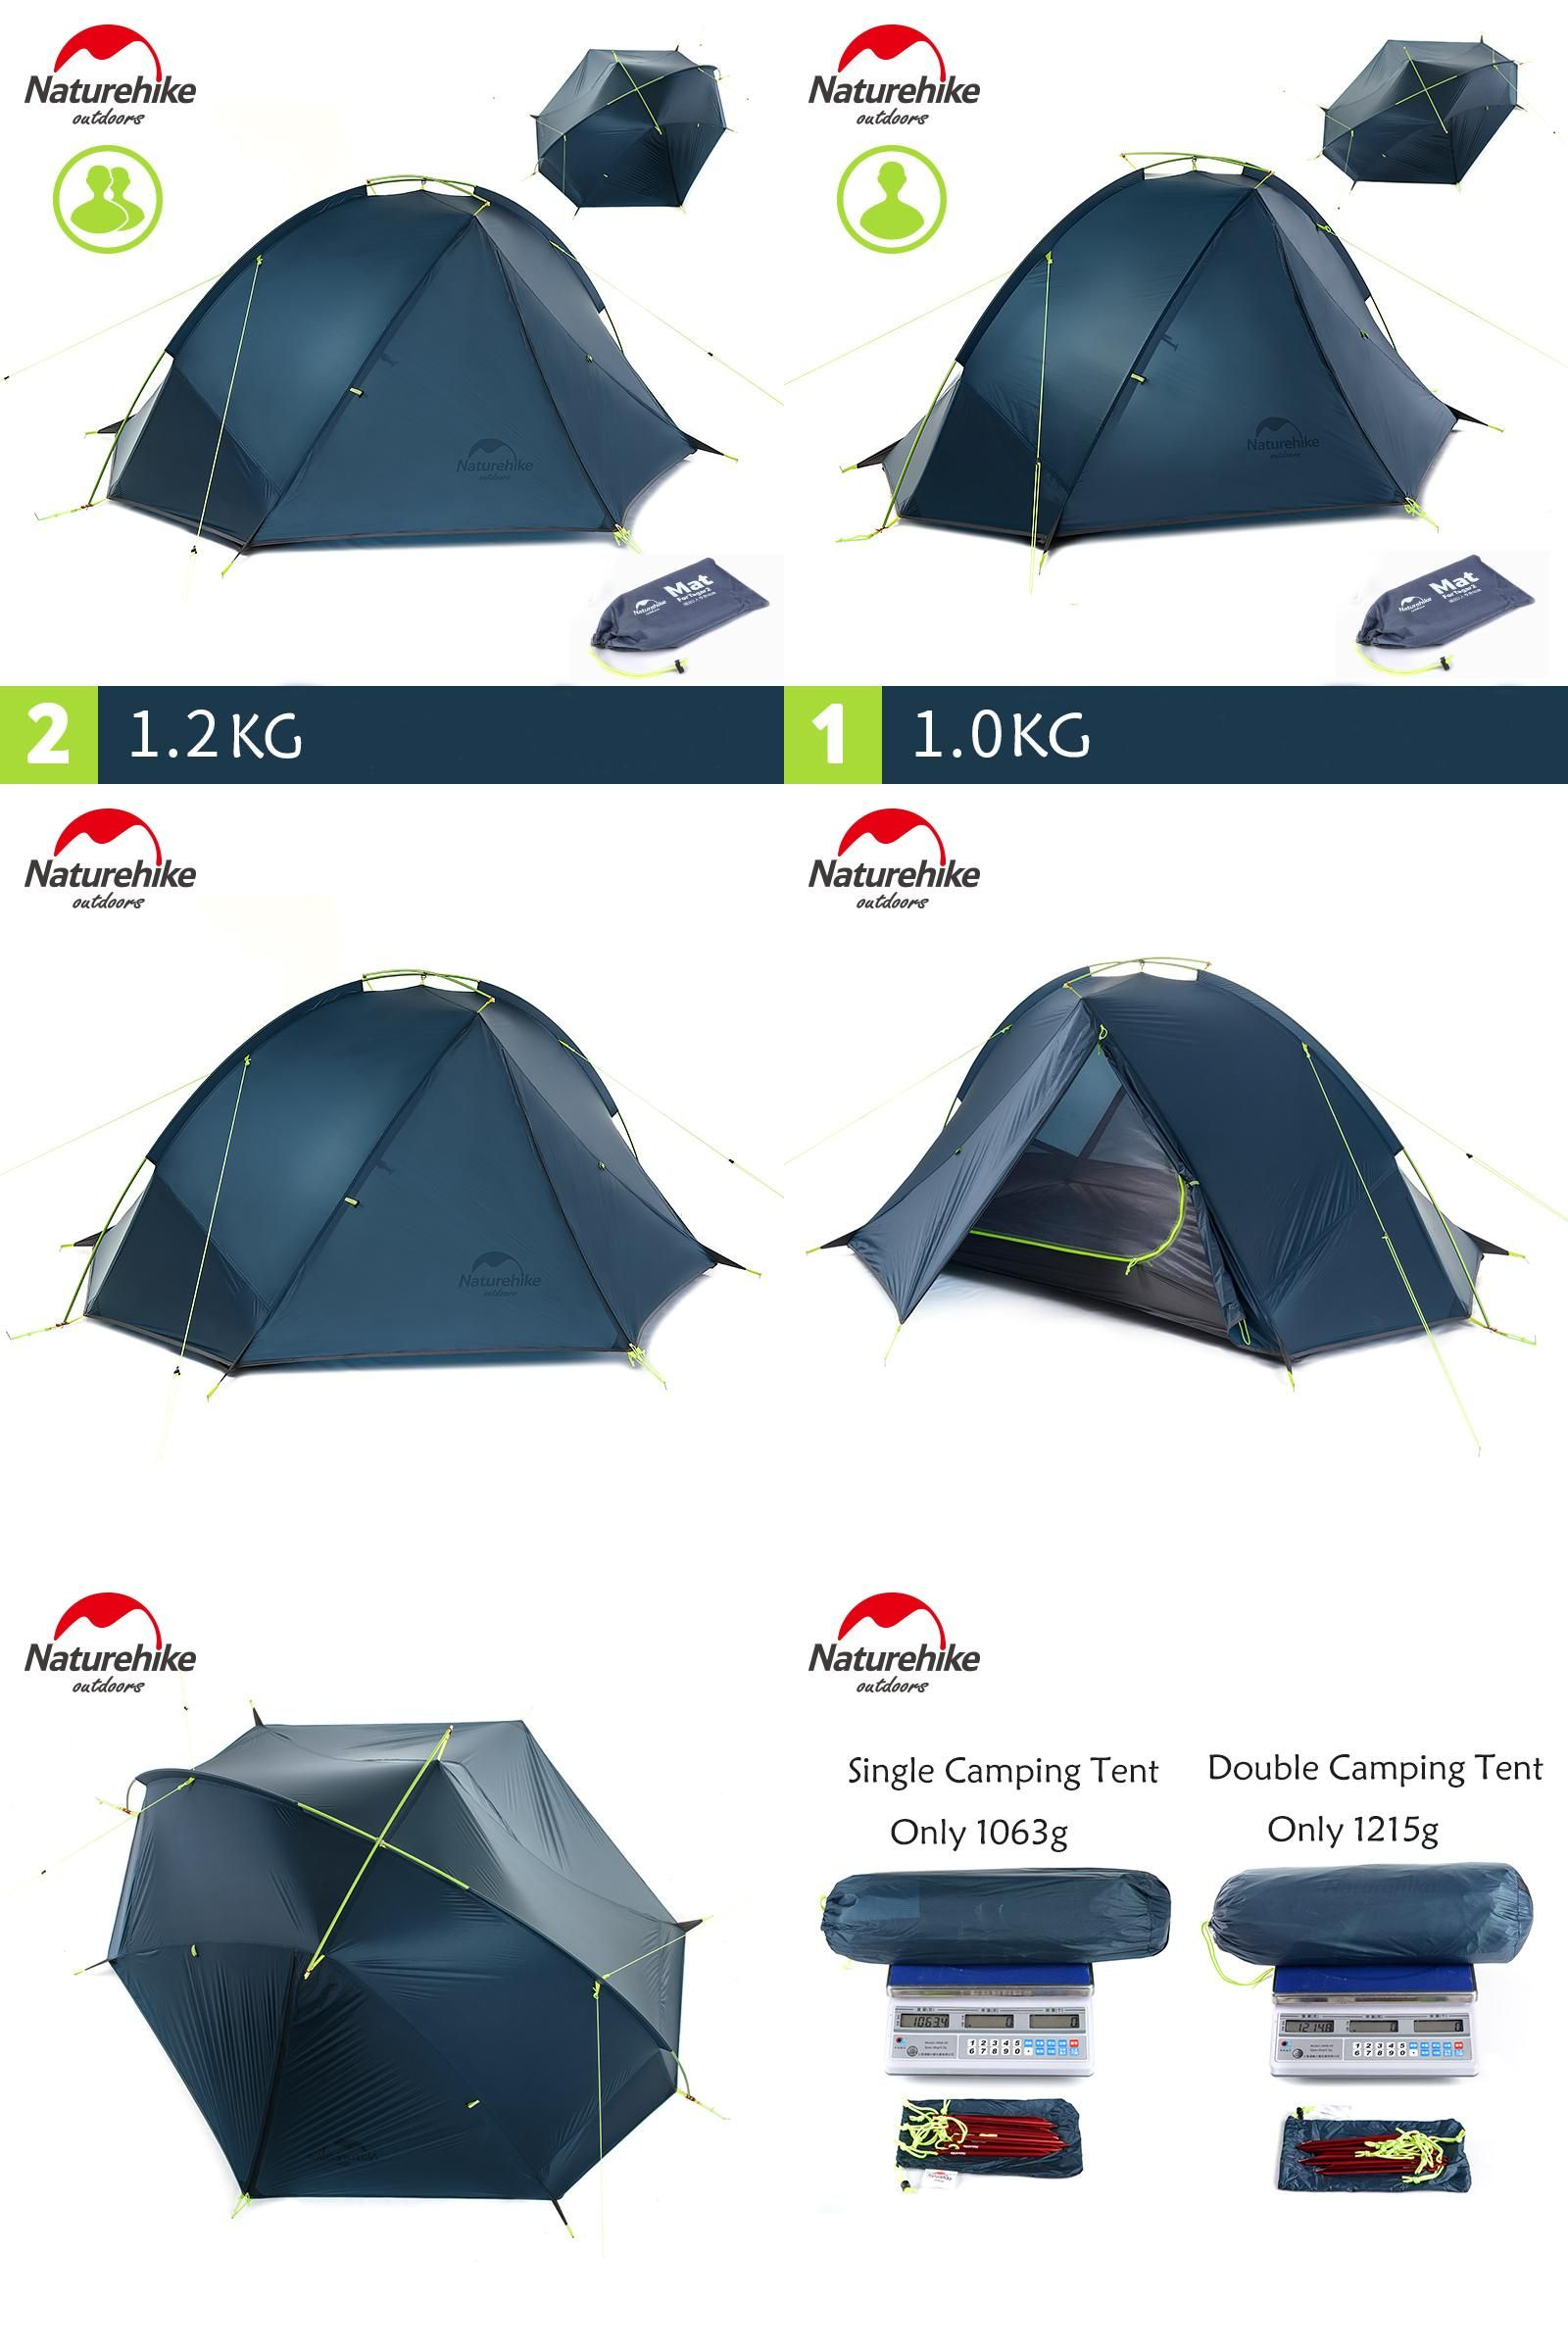 [Visit to Buy] Naturehike 20D Nylon Taga Outdoor C&ing Tent Ultralight One Bedroom One  sc 1 st  Pinterest & Visit to Buy] Naturehike 20D Nylon Taga Outdoor Camping Tent ...